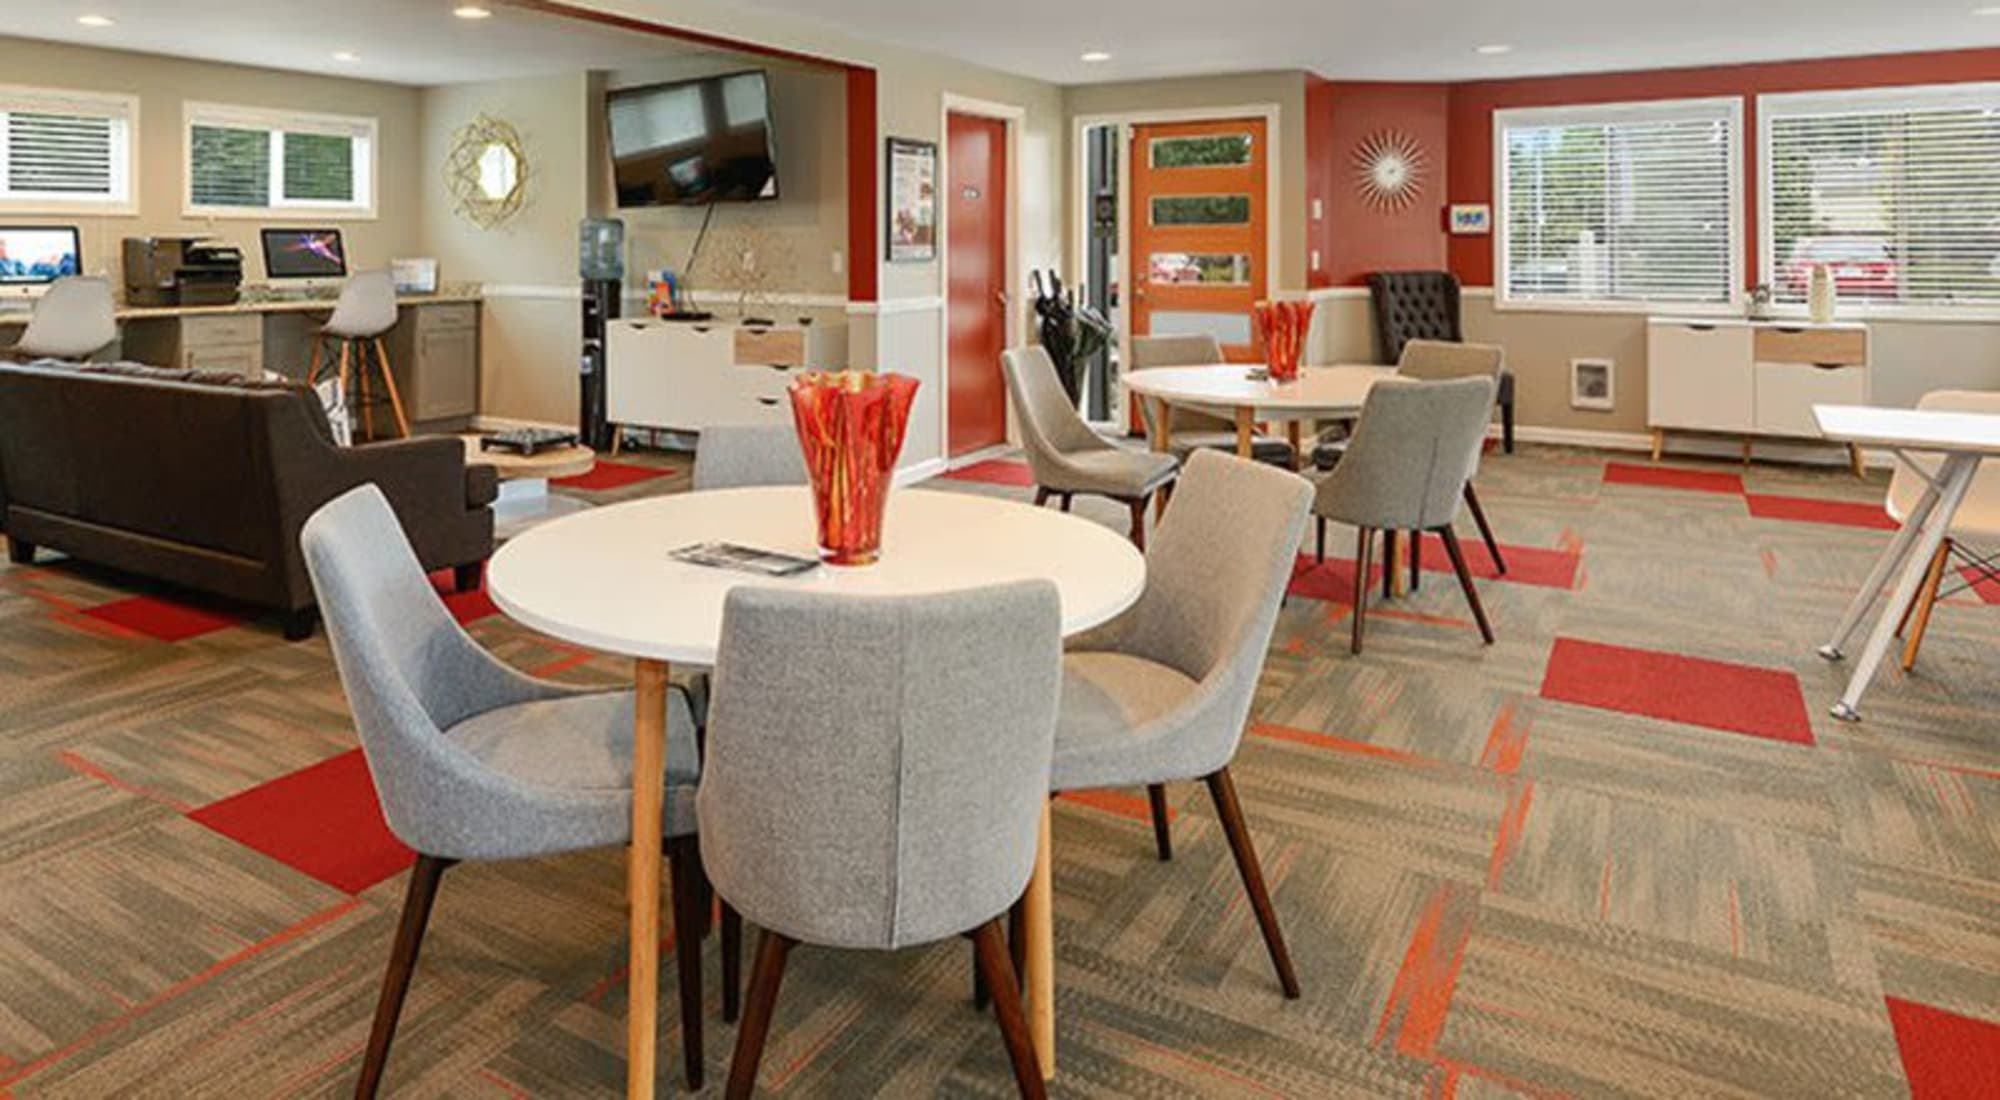 Apply to live at Terra Apartment Homes in Federal Way, Washington